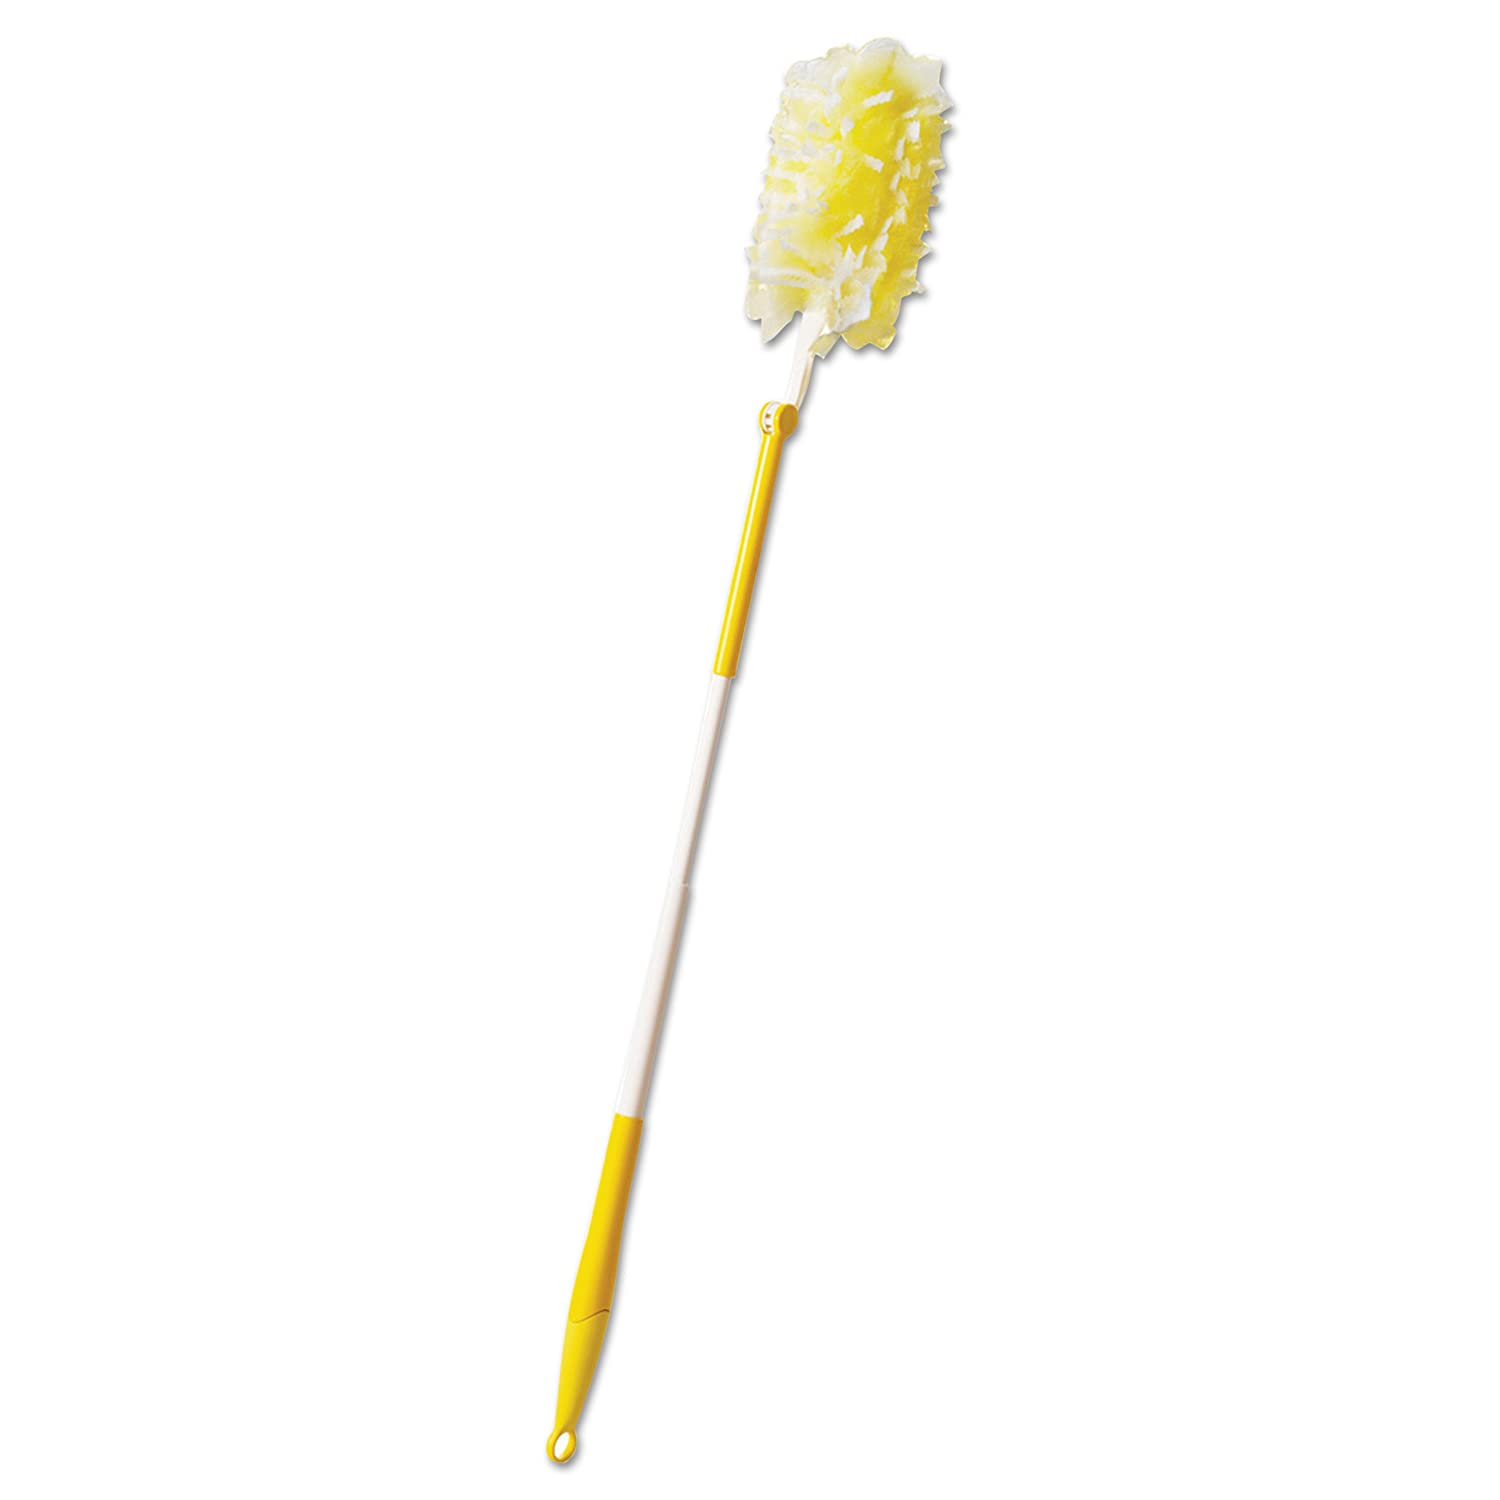 Case of 6 Kits Swiffer 82074CT 360 Dusters 1 Handle /& 3 Dusters per Kit Plastic Handle Extends to 3 ft